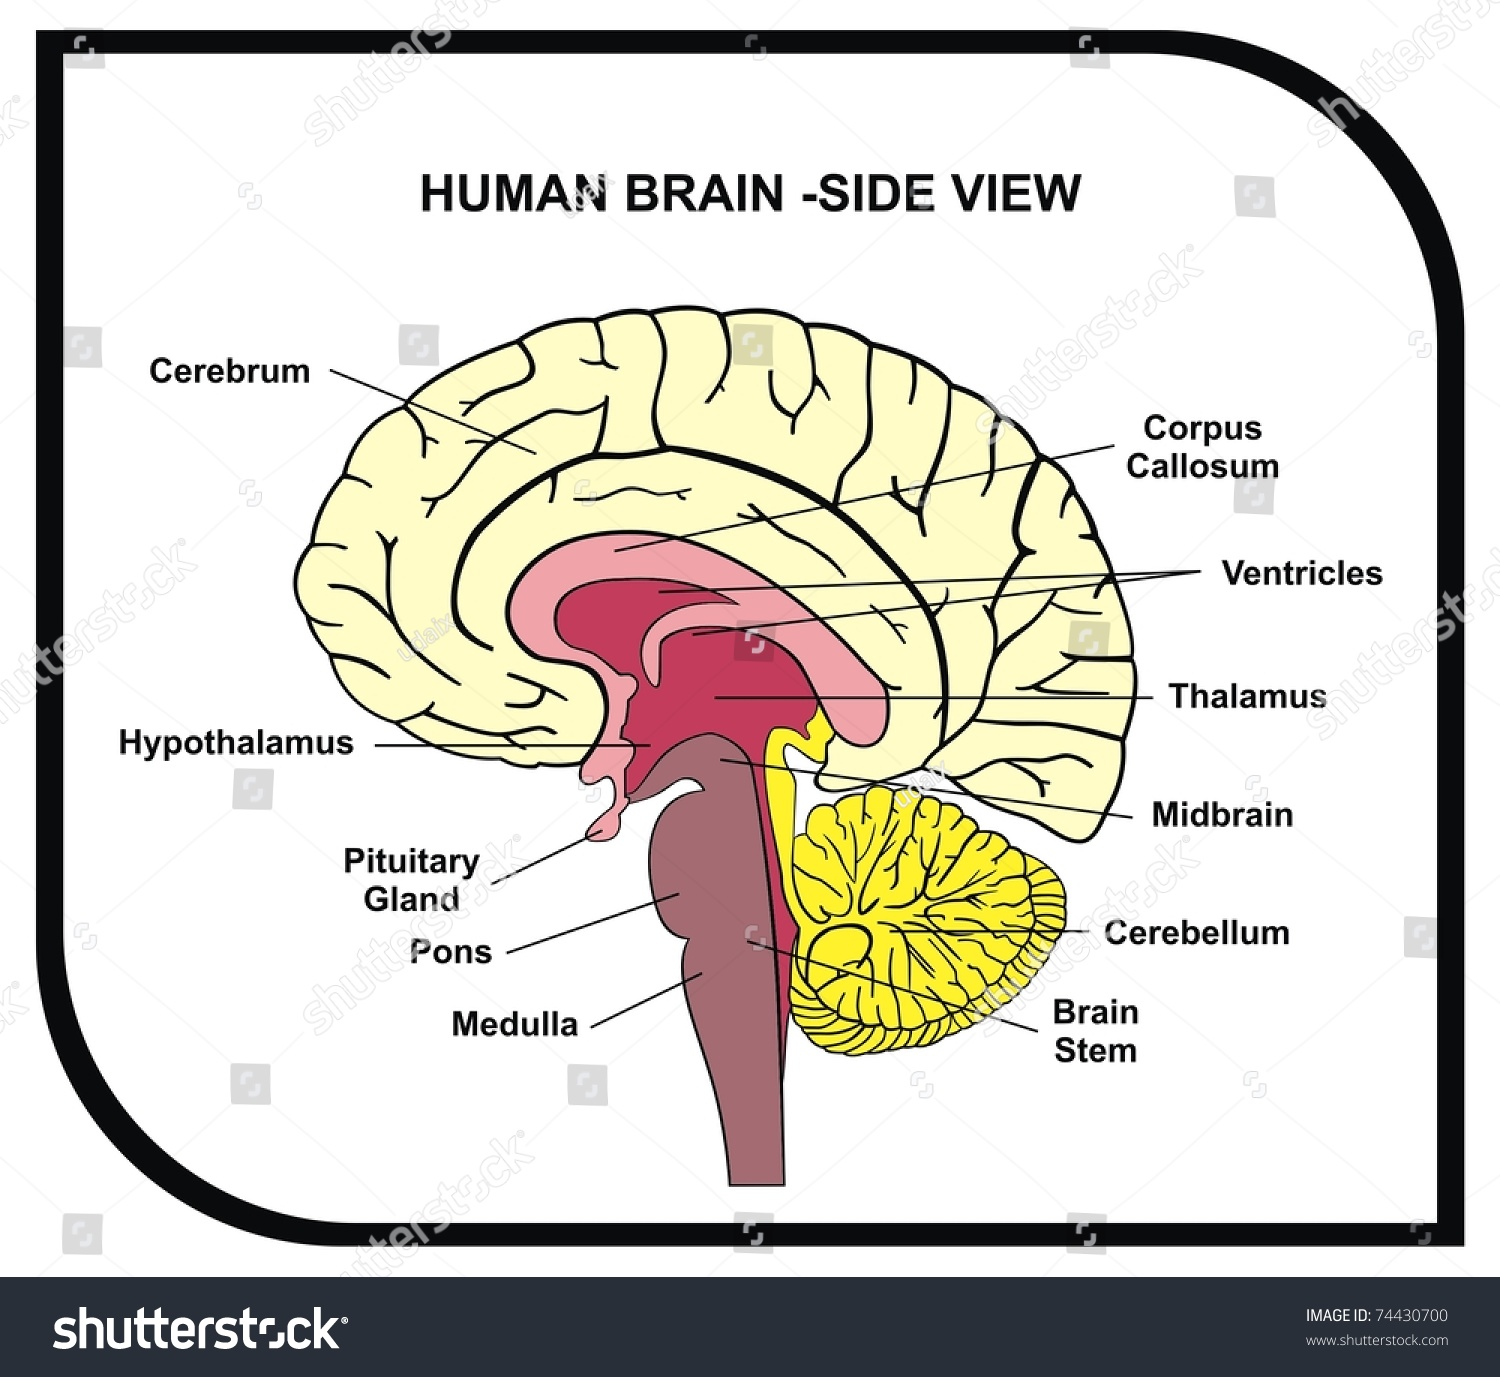 brain diagram sagittal view 2000 vw beetle engine a cat plays fetch therewasanattempt